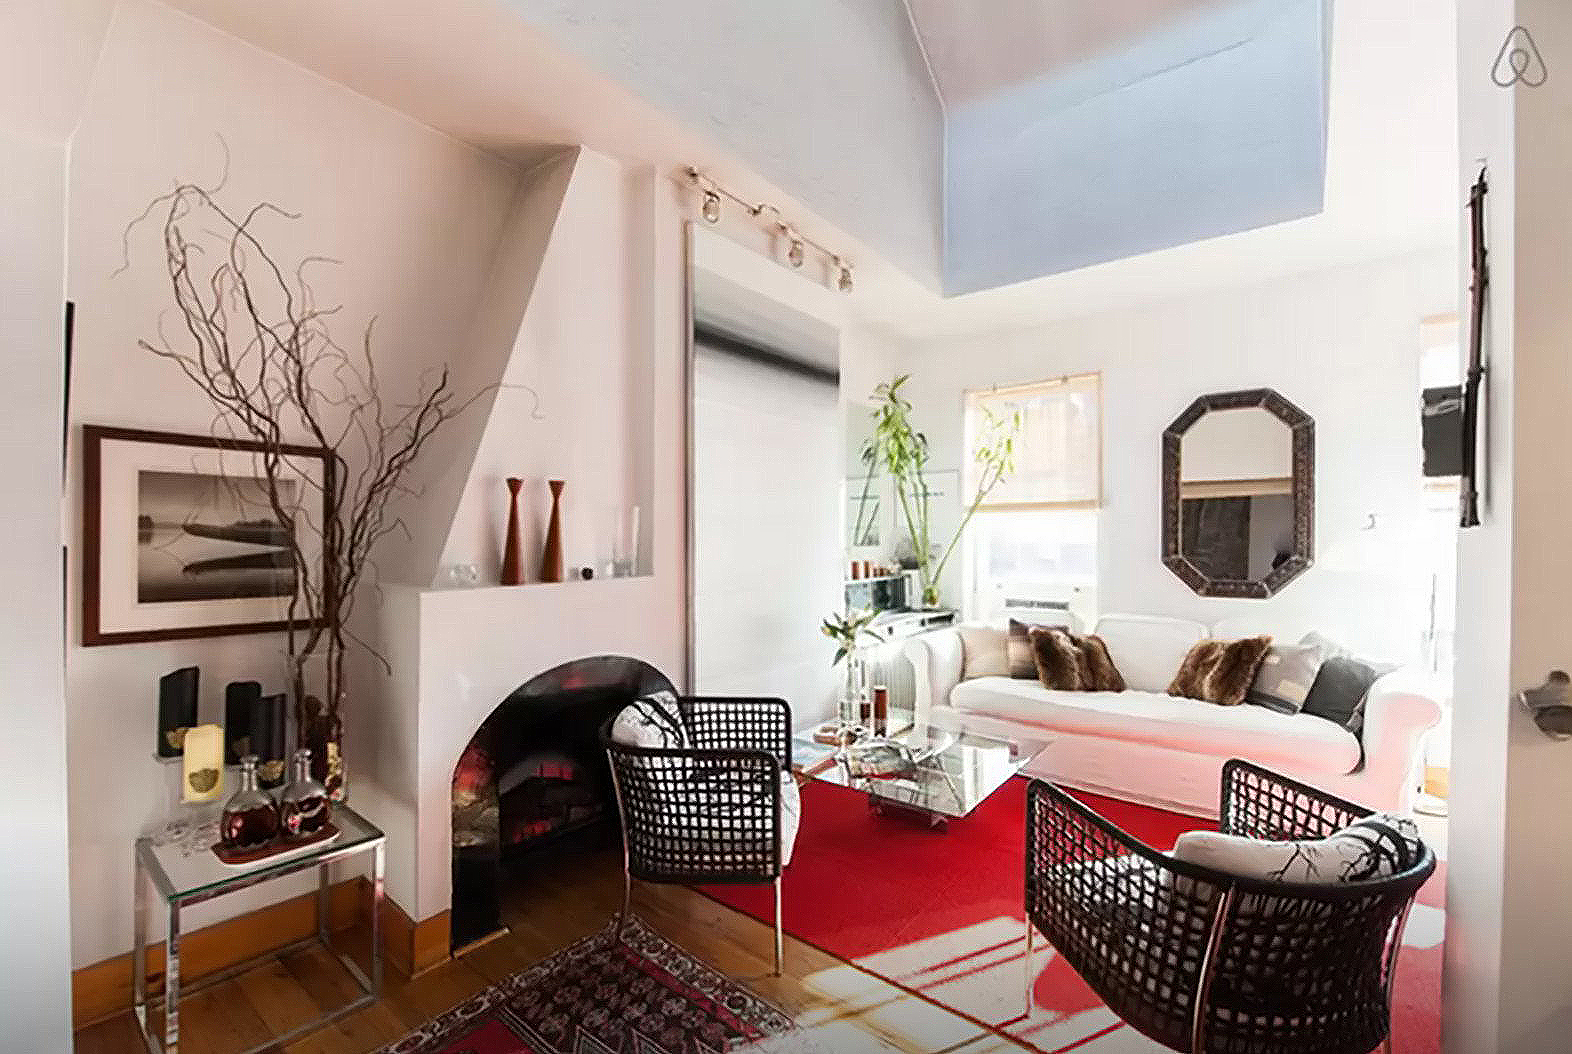 325sqft Greenwich Village Apartment Is Smartly Designed to